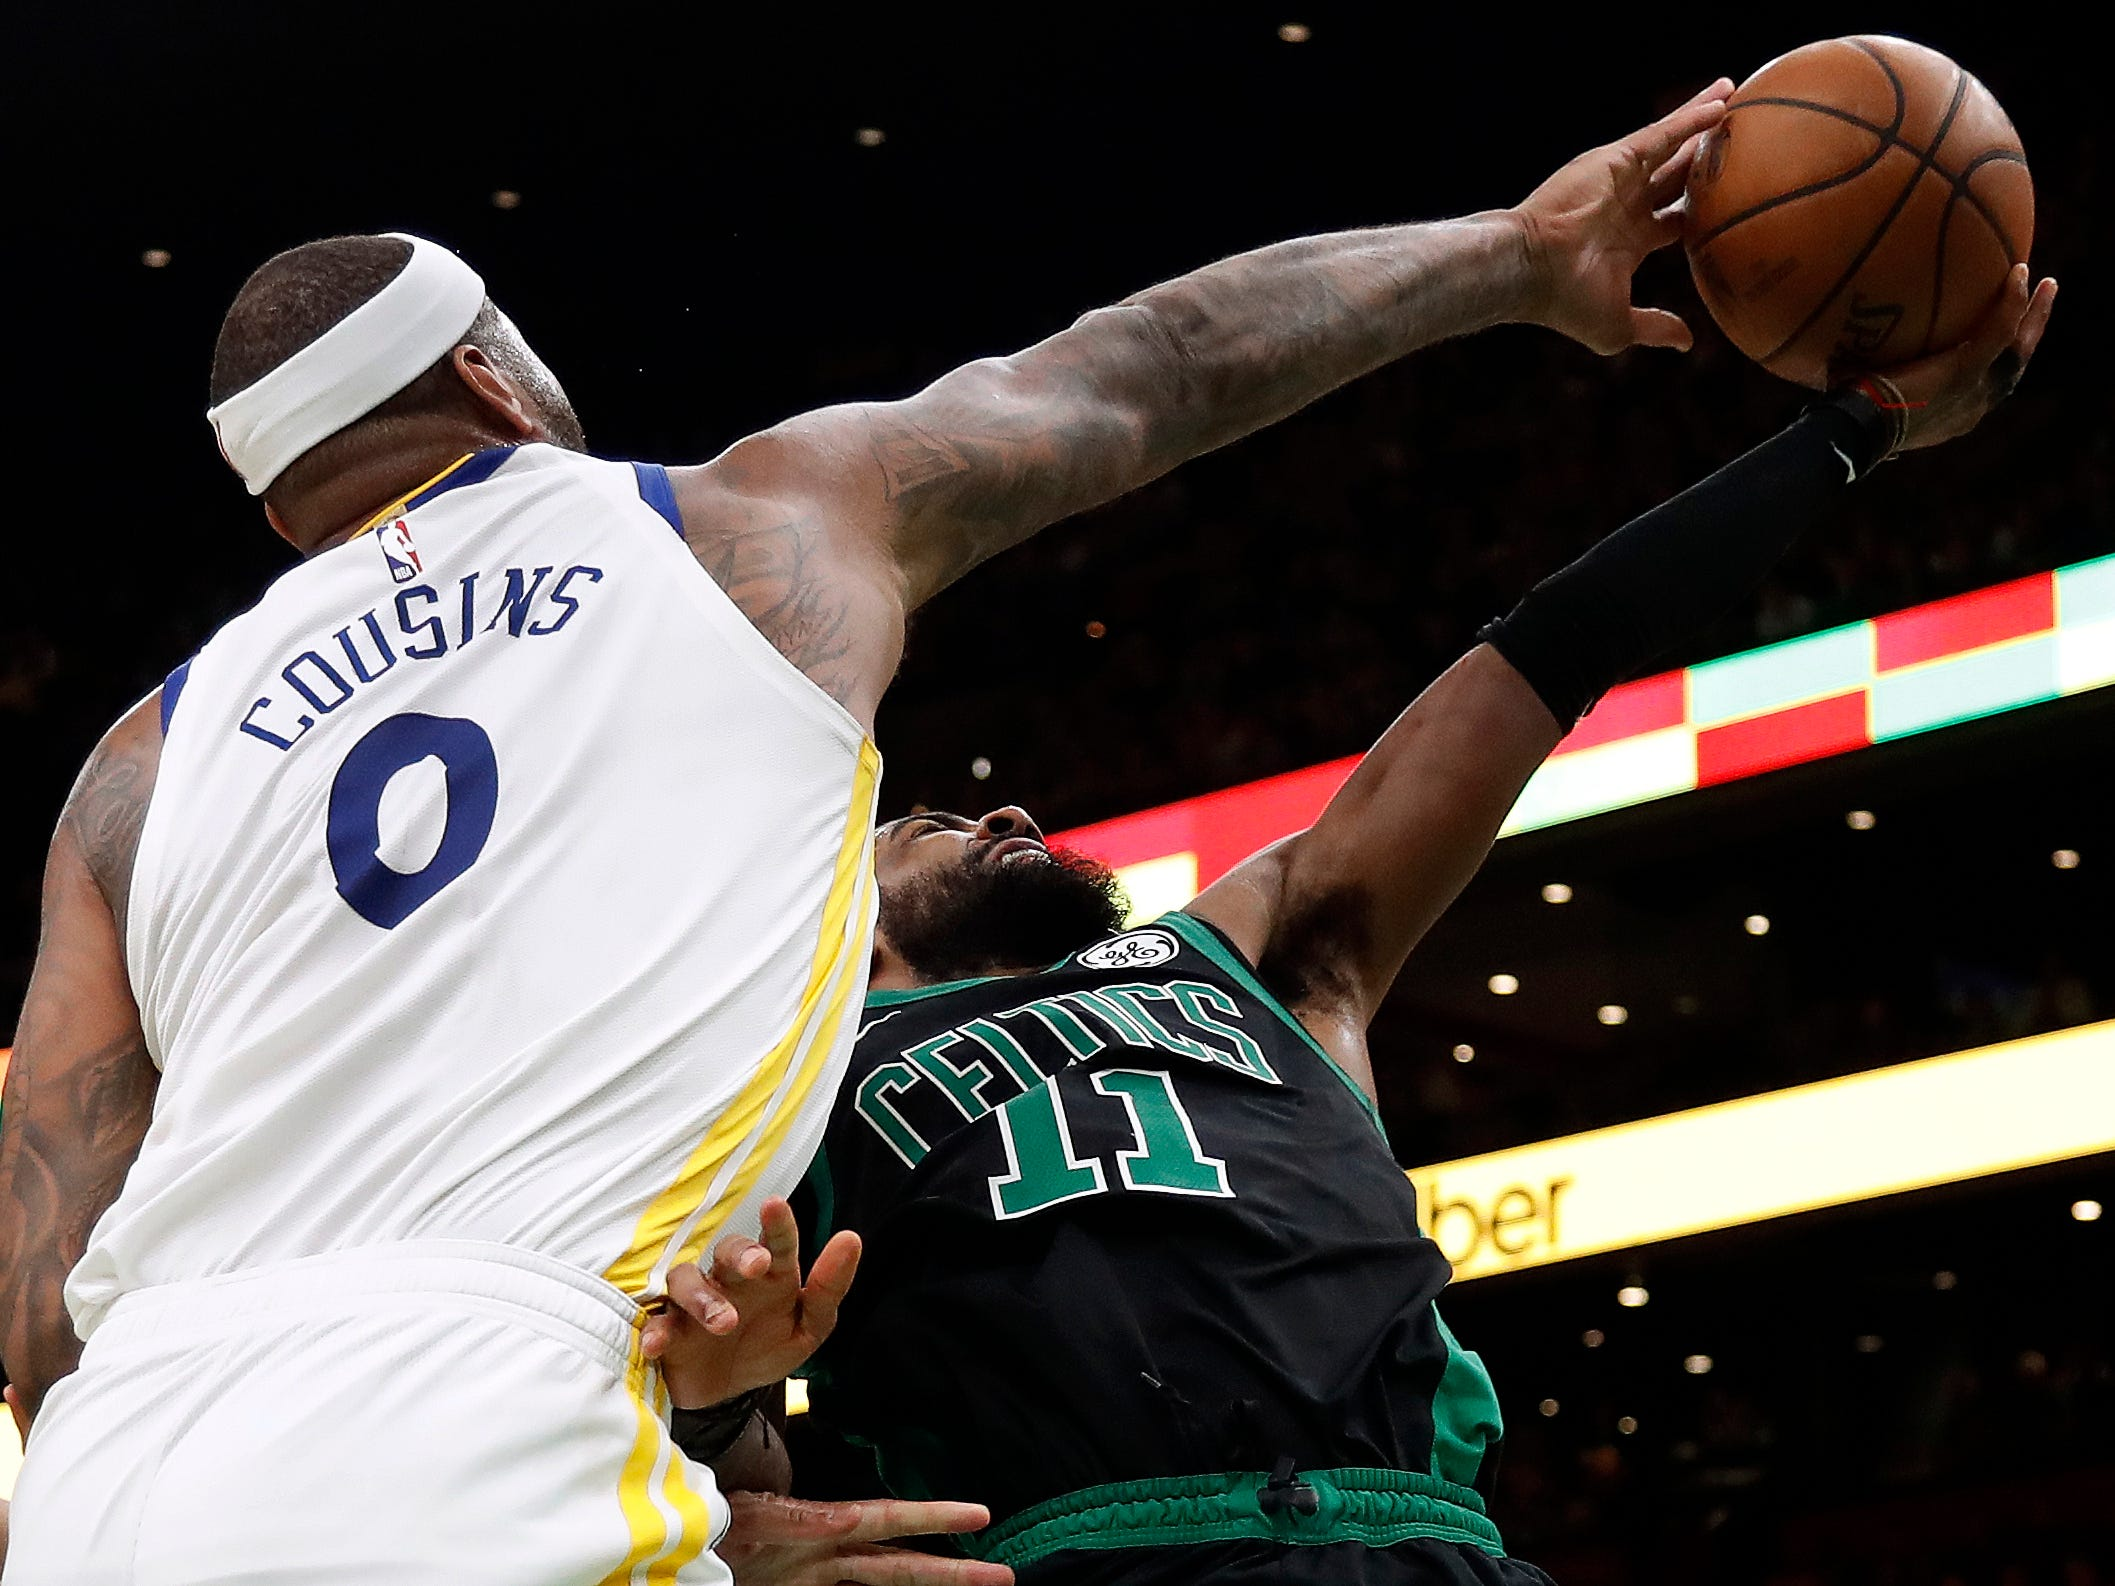 Jan. 26: Warriors center DeMarcus Cousins (0) blocks a shot by Celtics guard Kyrie Irving (11) on a second-half drive to the basket in Boston.